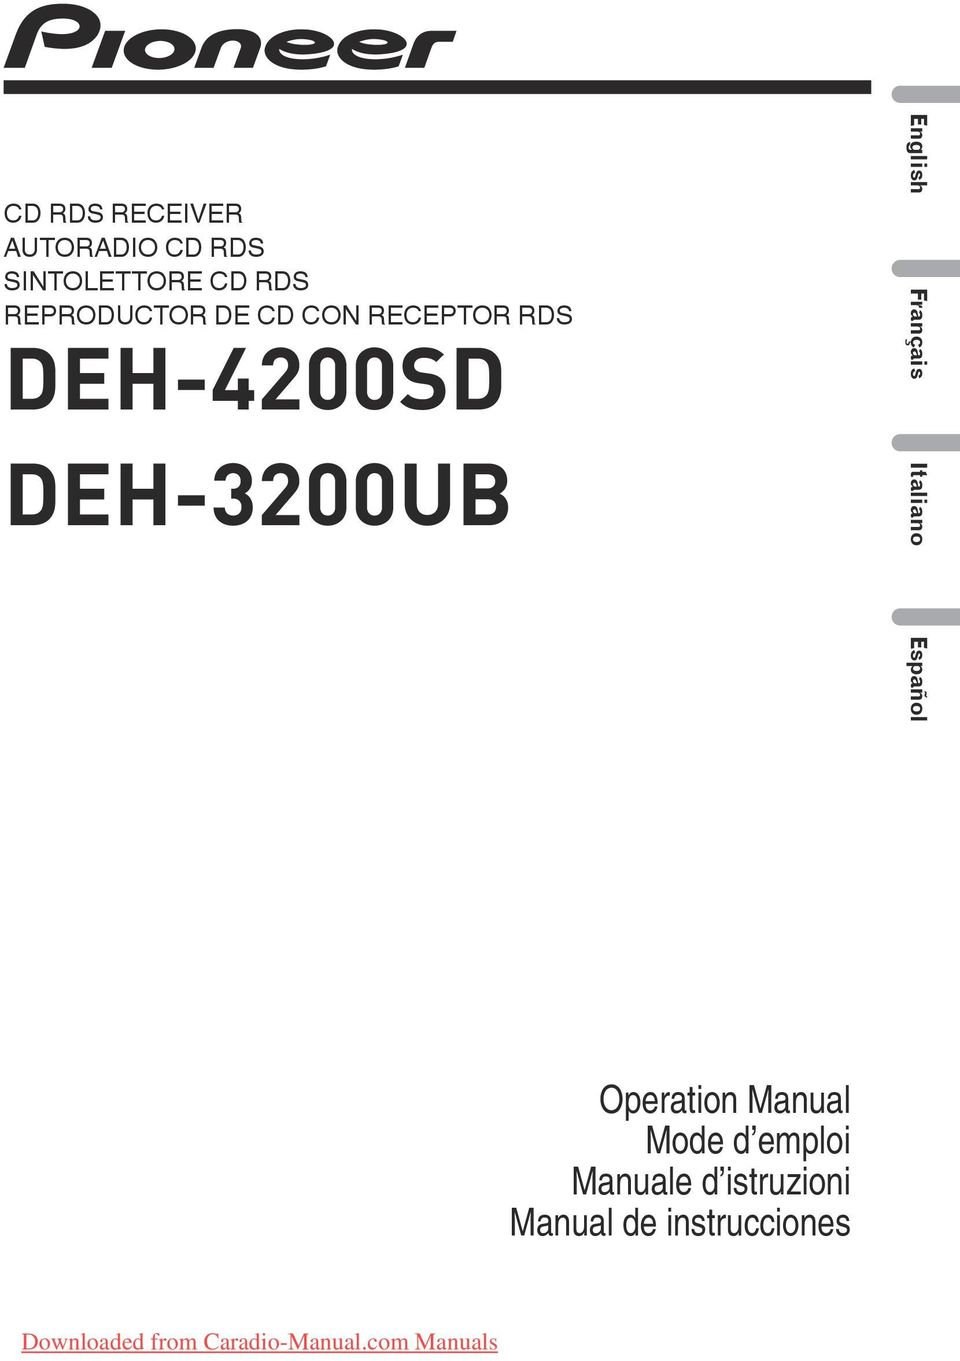 Italiano Español Operation Manual Mode d emploi Manuale d